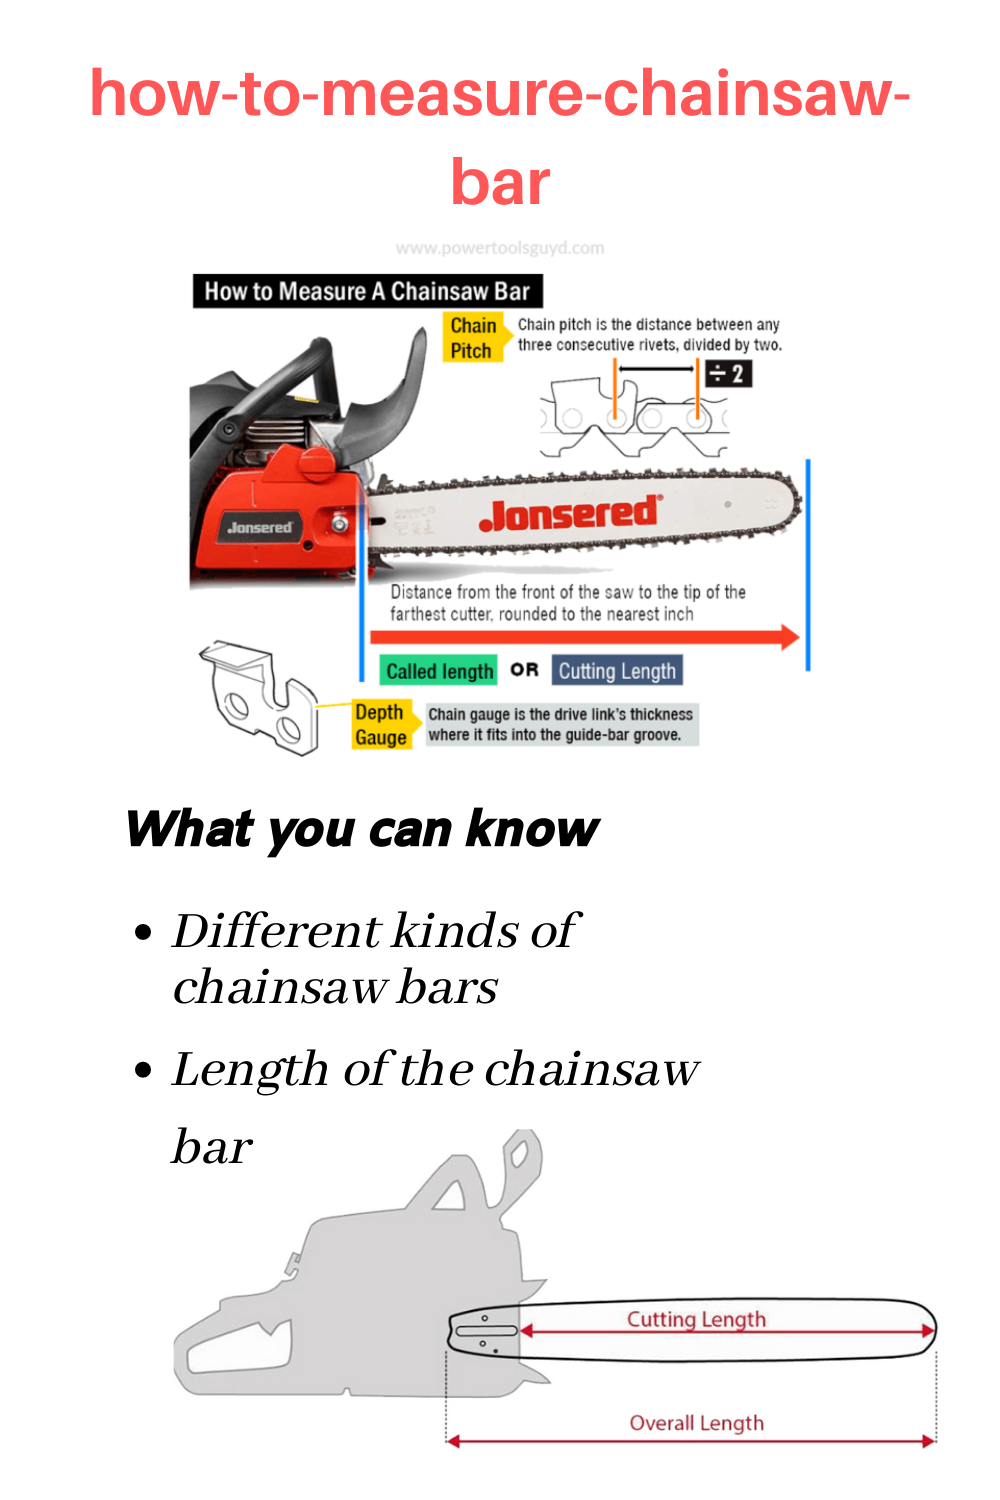 How To Measure A Chainsaw Bar Guide For Beginners Chainsaw Bars Chainsaw Bar